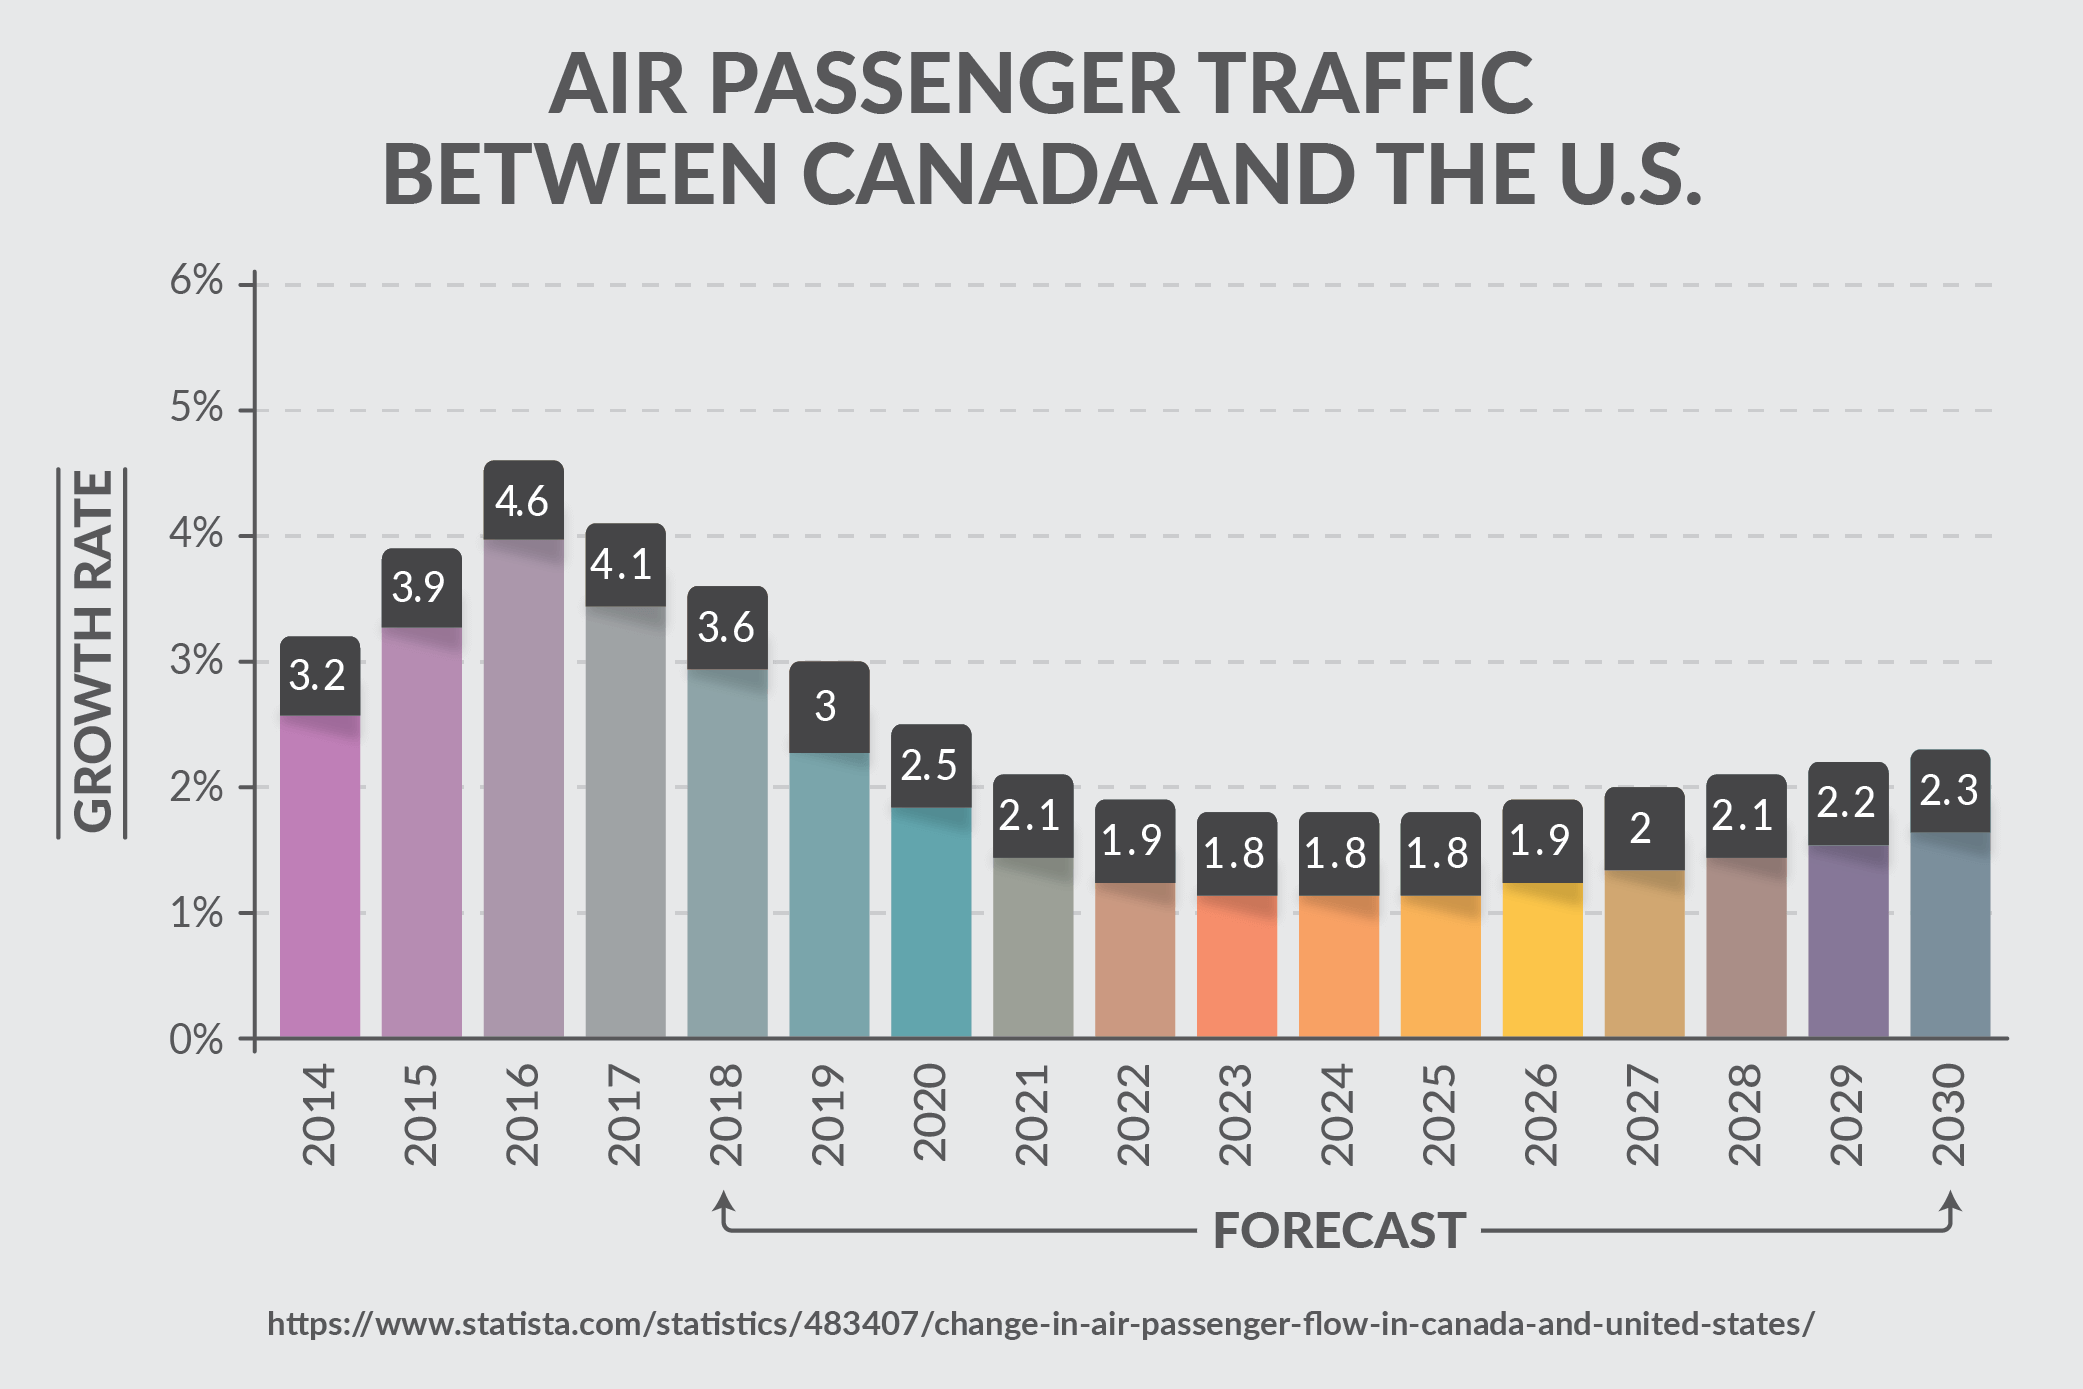 Air Passenger Traffic Between Canada and the U.S.